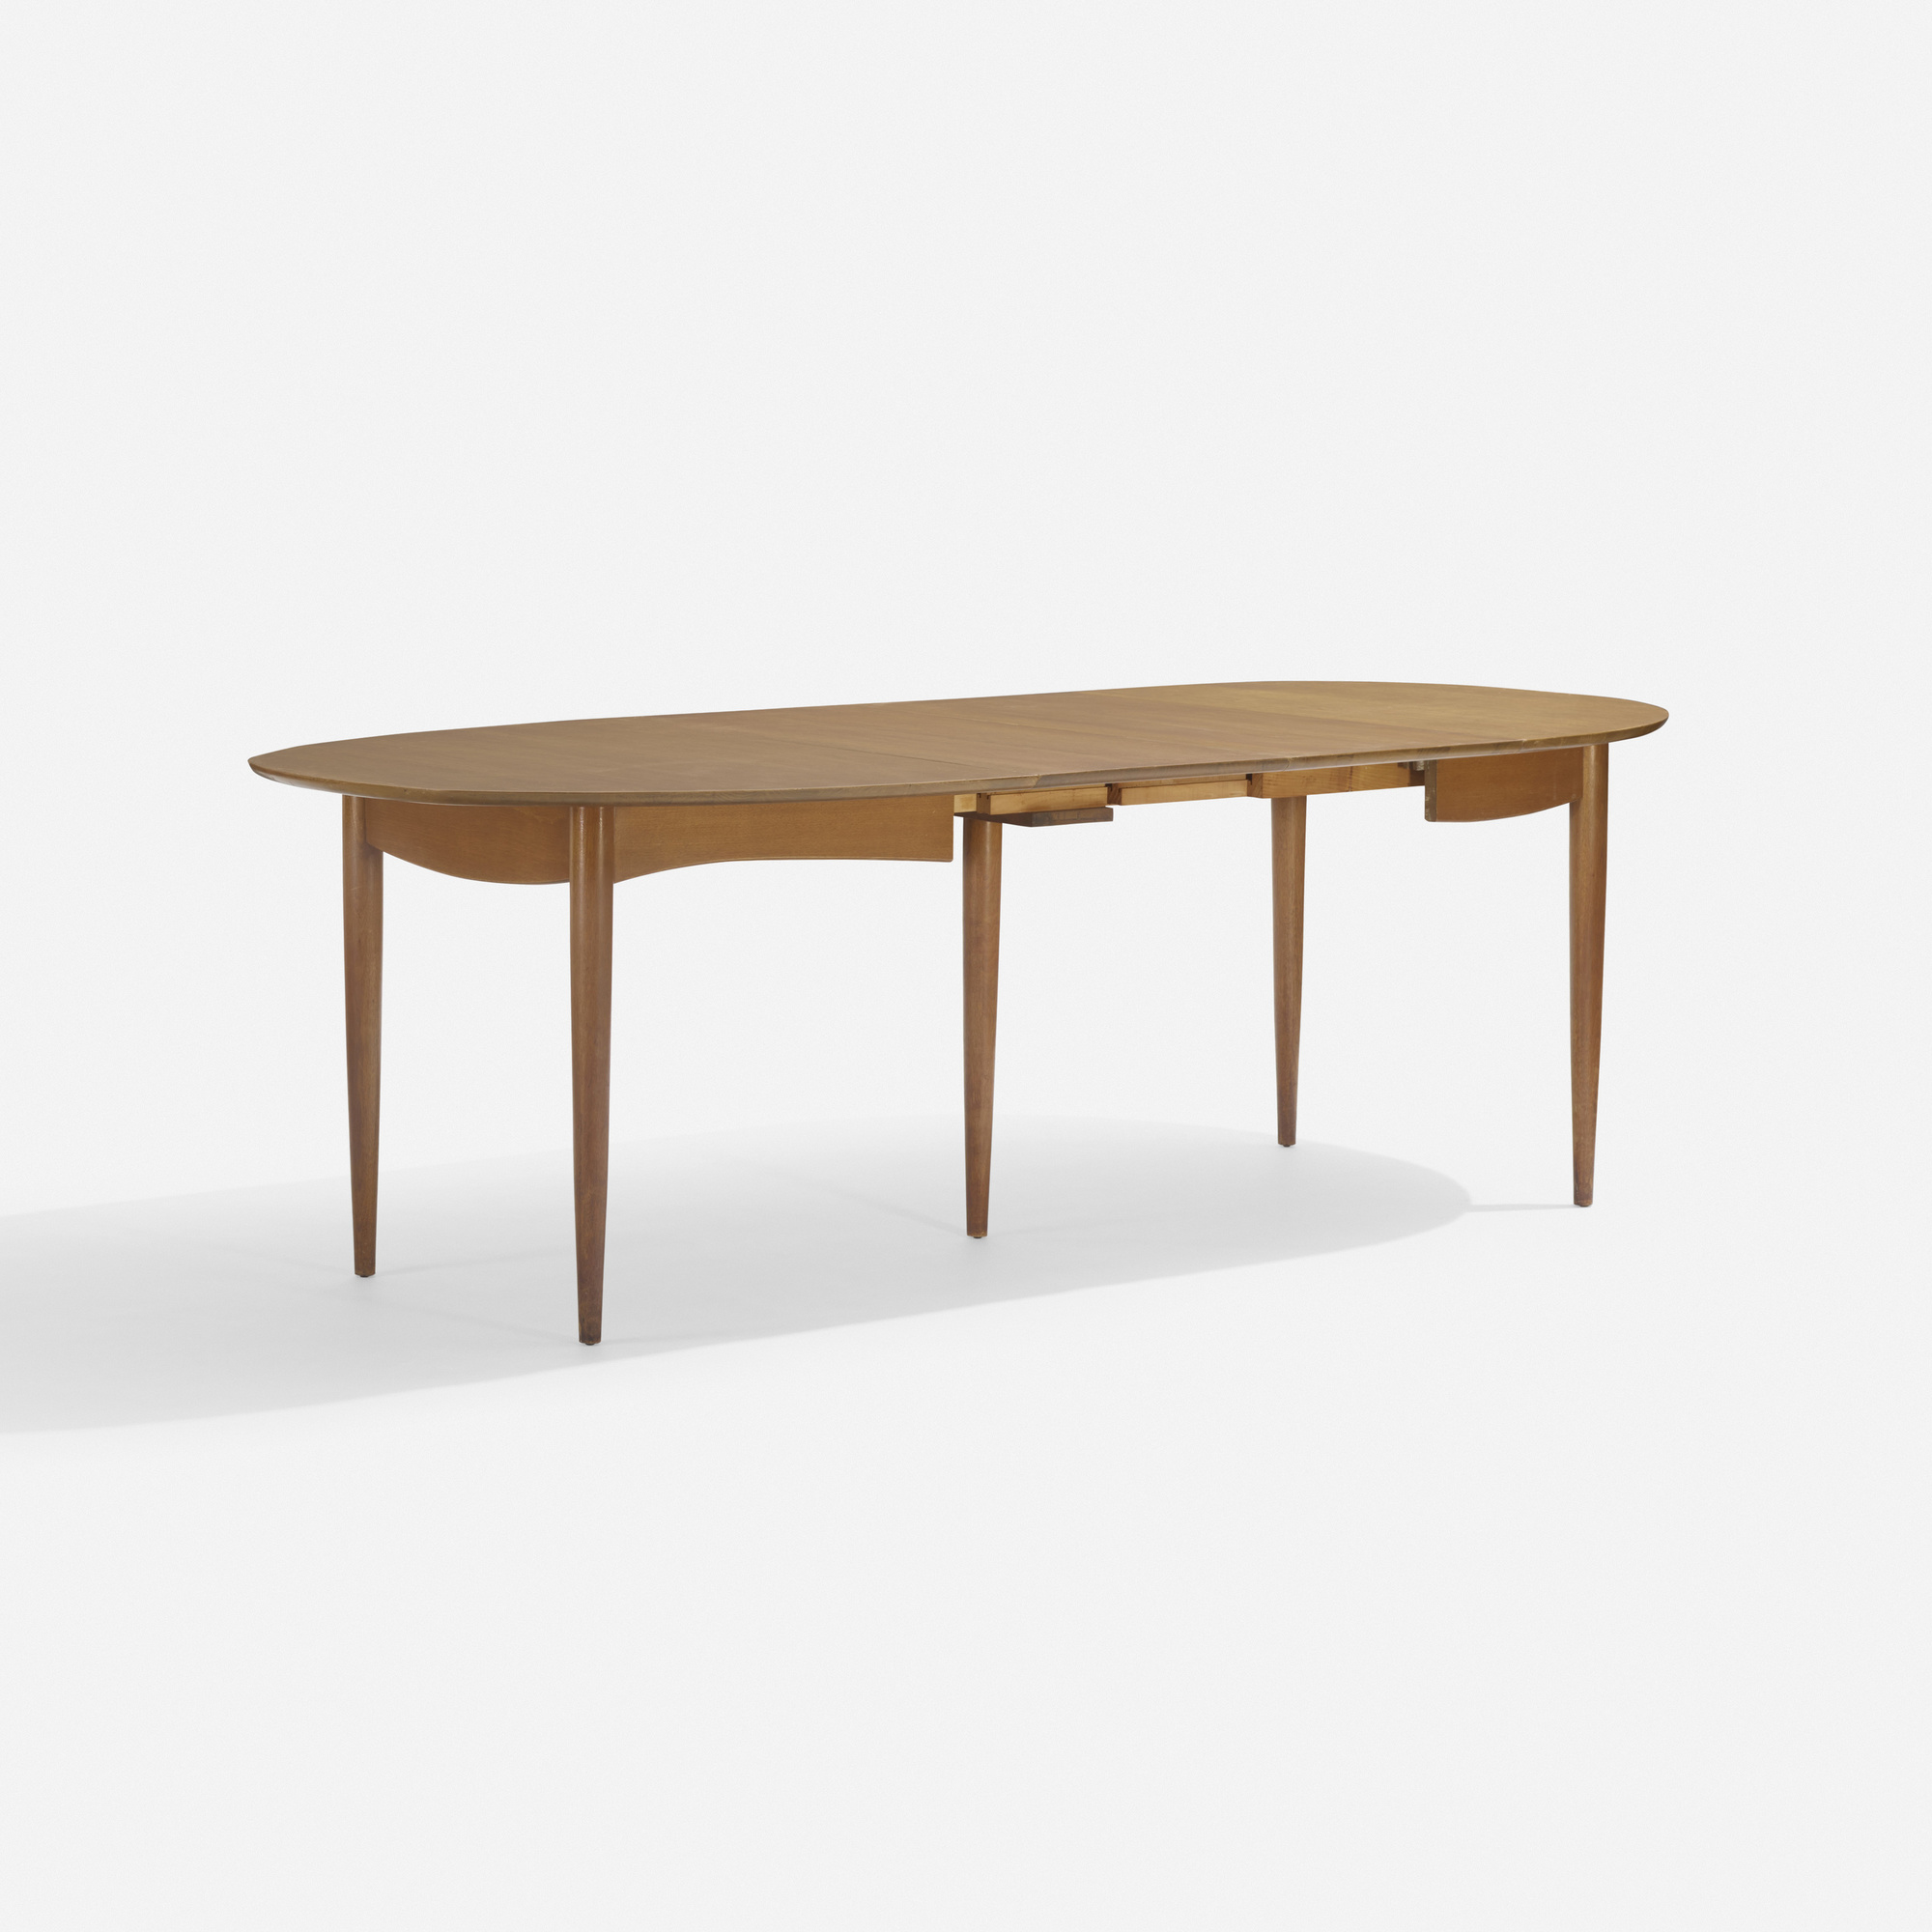 136: In the manner of Finn Juhl / dining table (2 of 2)